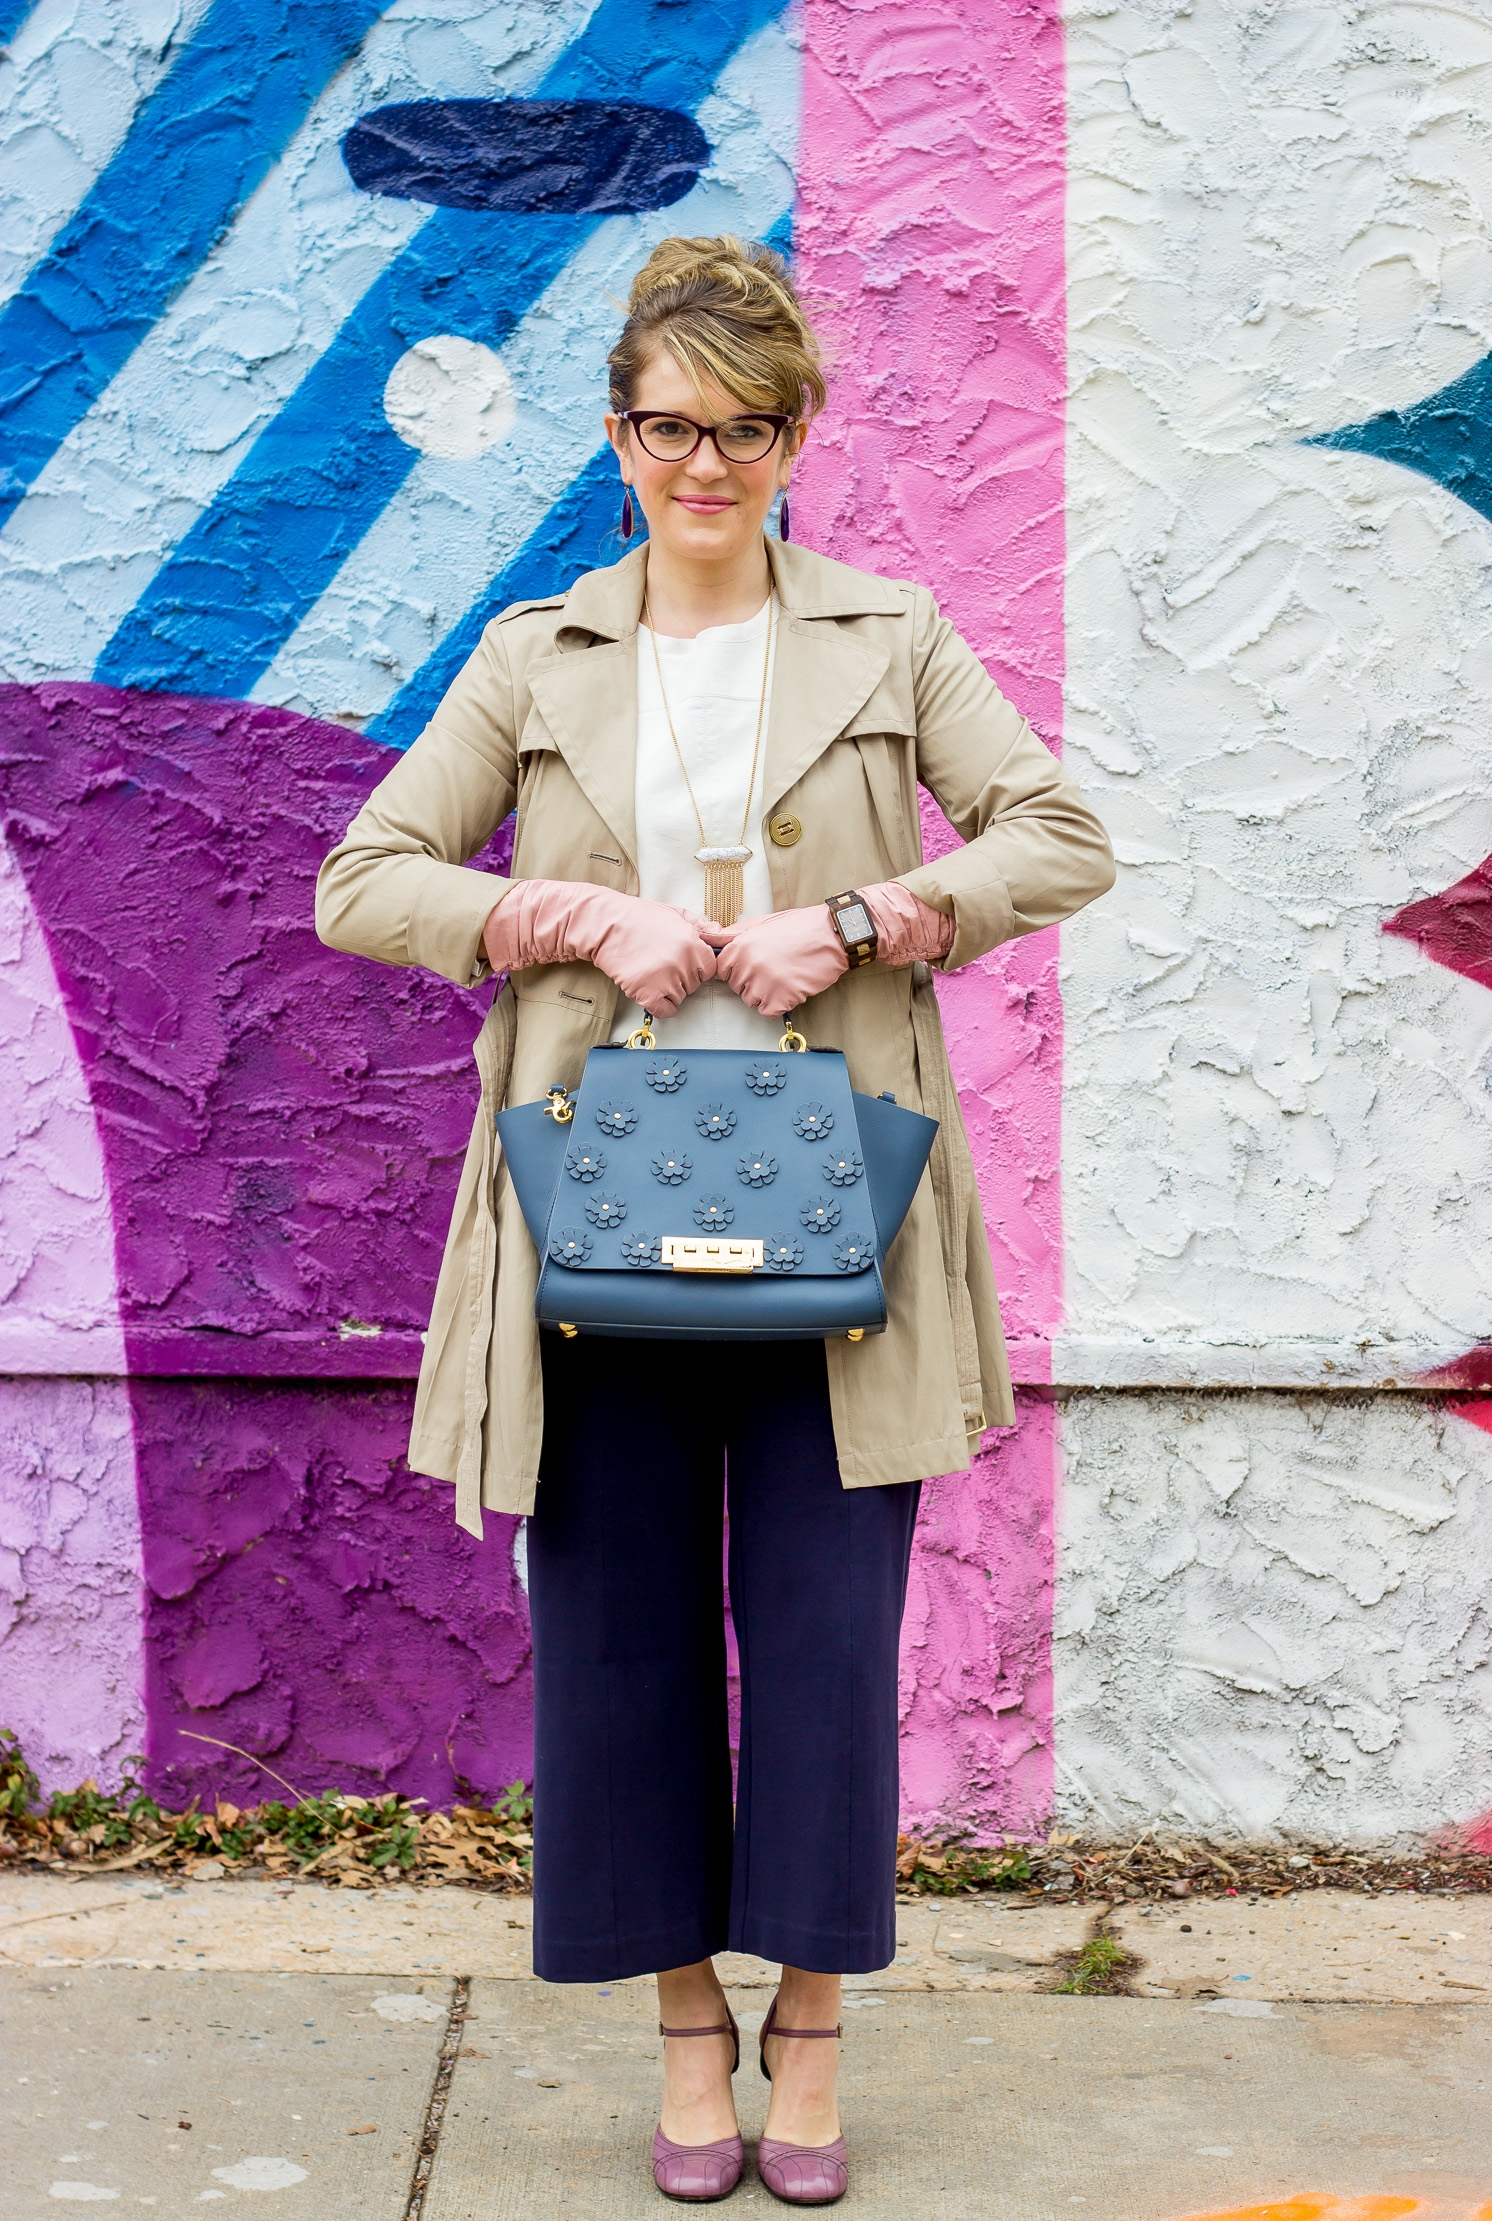 Zac Posen Eartha bag worn by Atlanta blogger Elise Giannasi